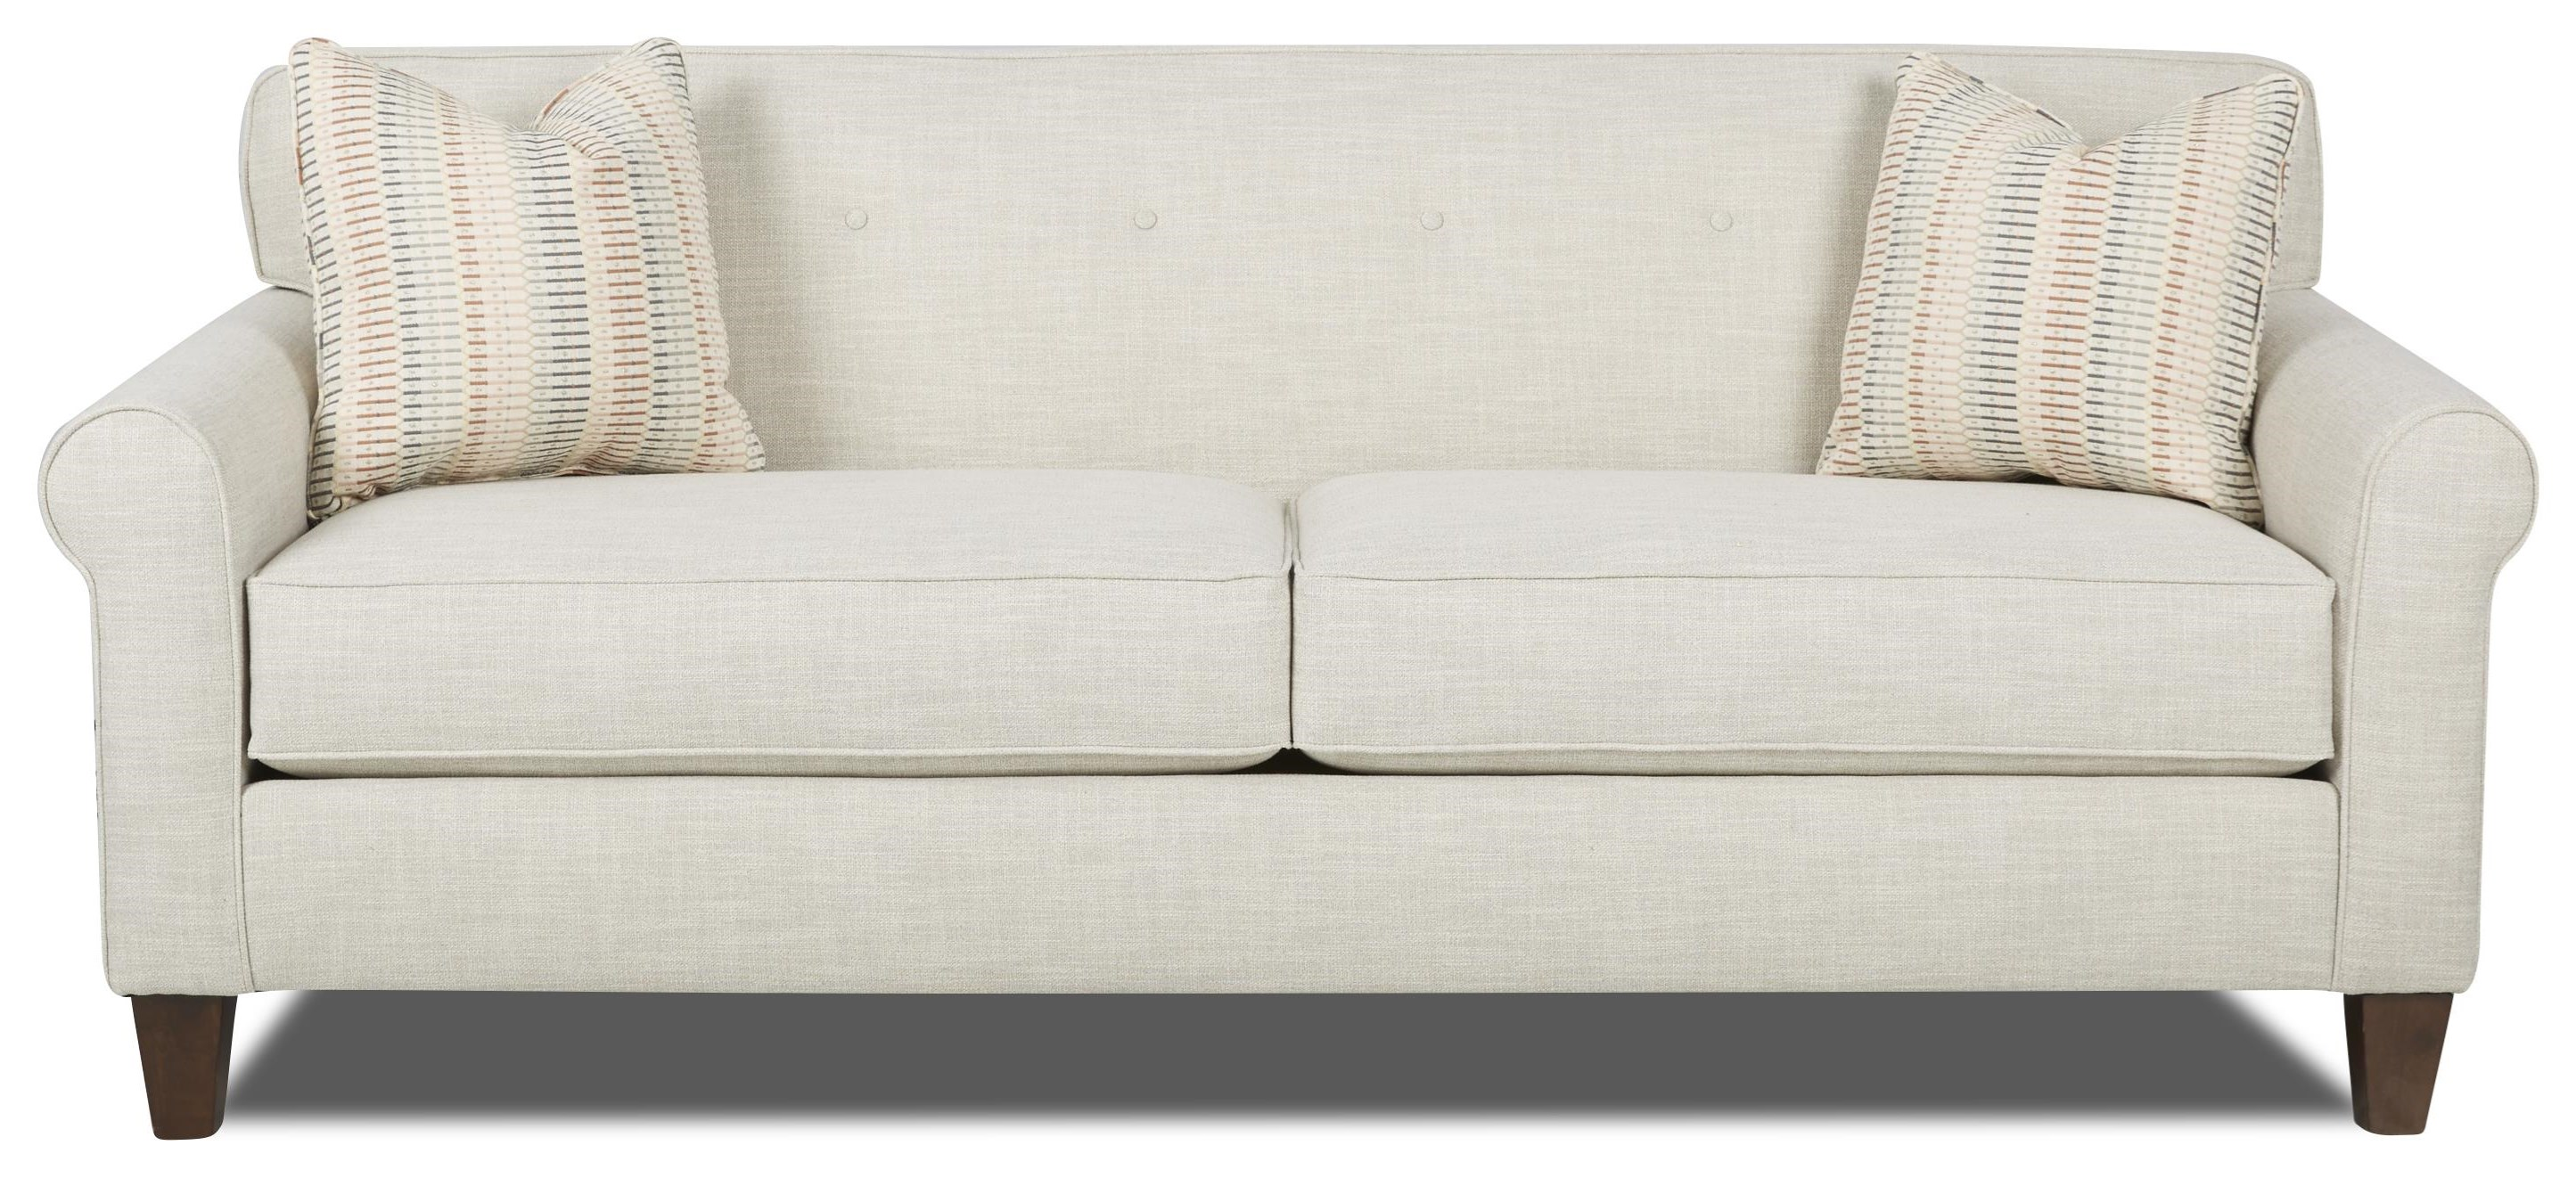 Small Scale Sofa with Button Tuft Detail